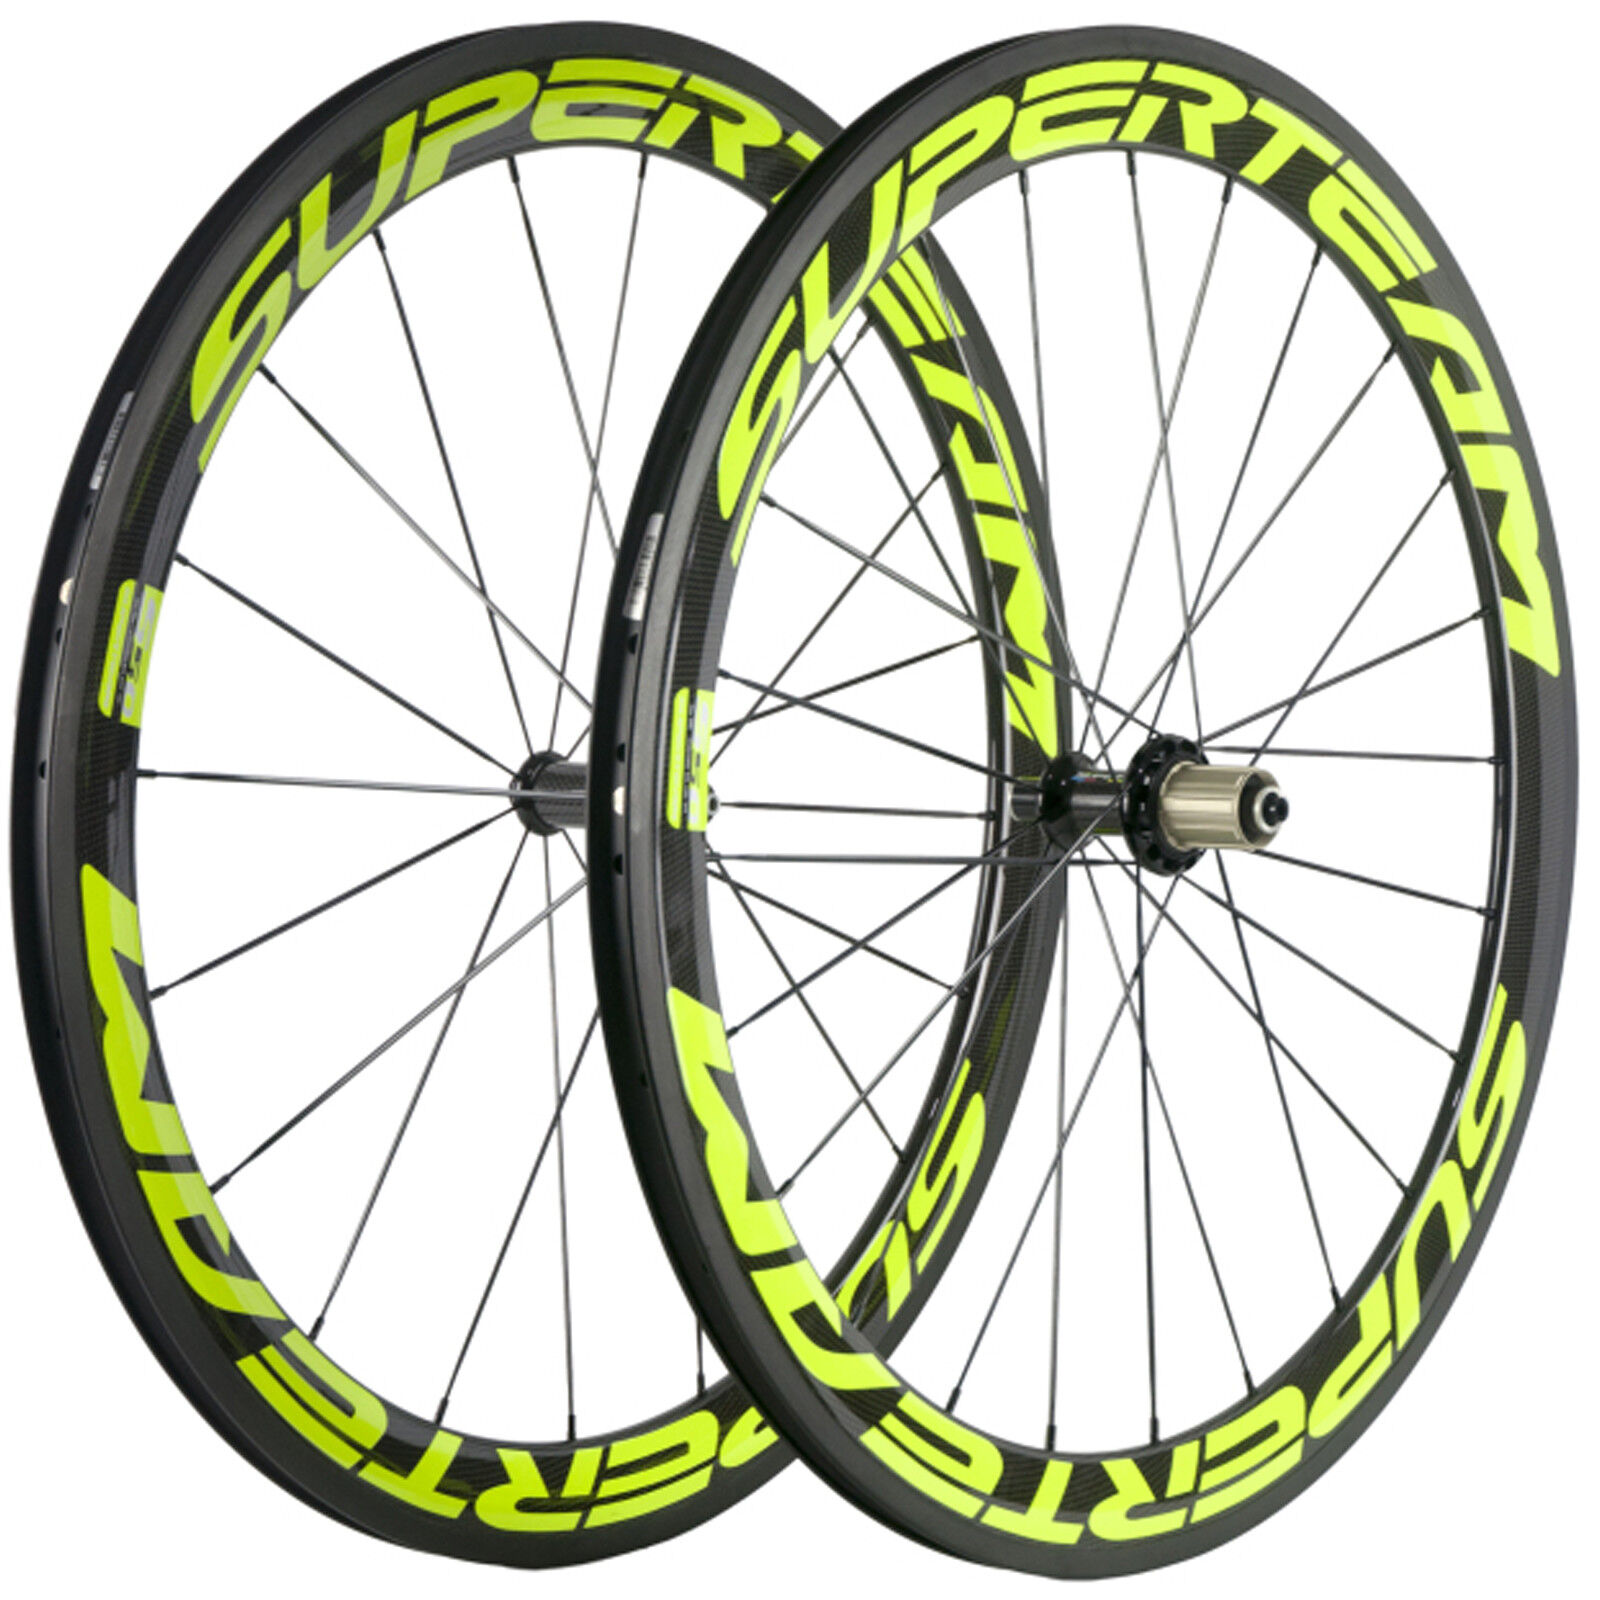 SUPERTEAM Carbon Wheels 50mm Clincher  Bicycle Wheelset R36 Hub Lemon Green color  your satisfaction is our target